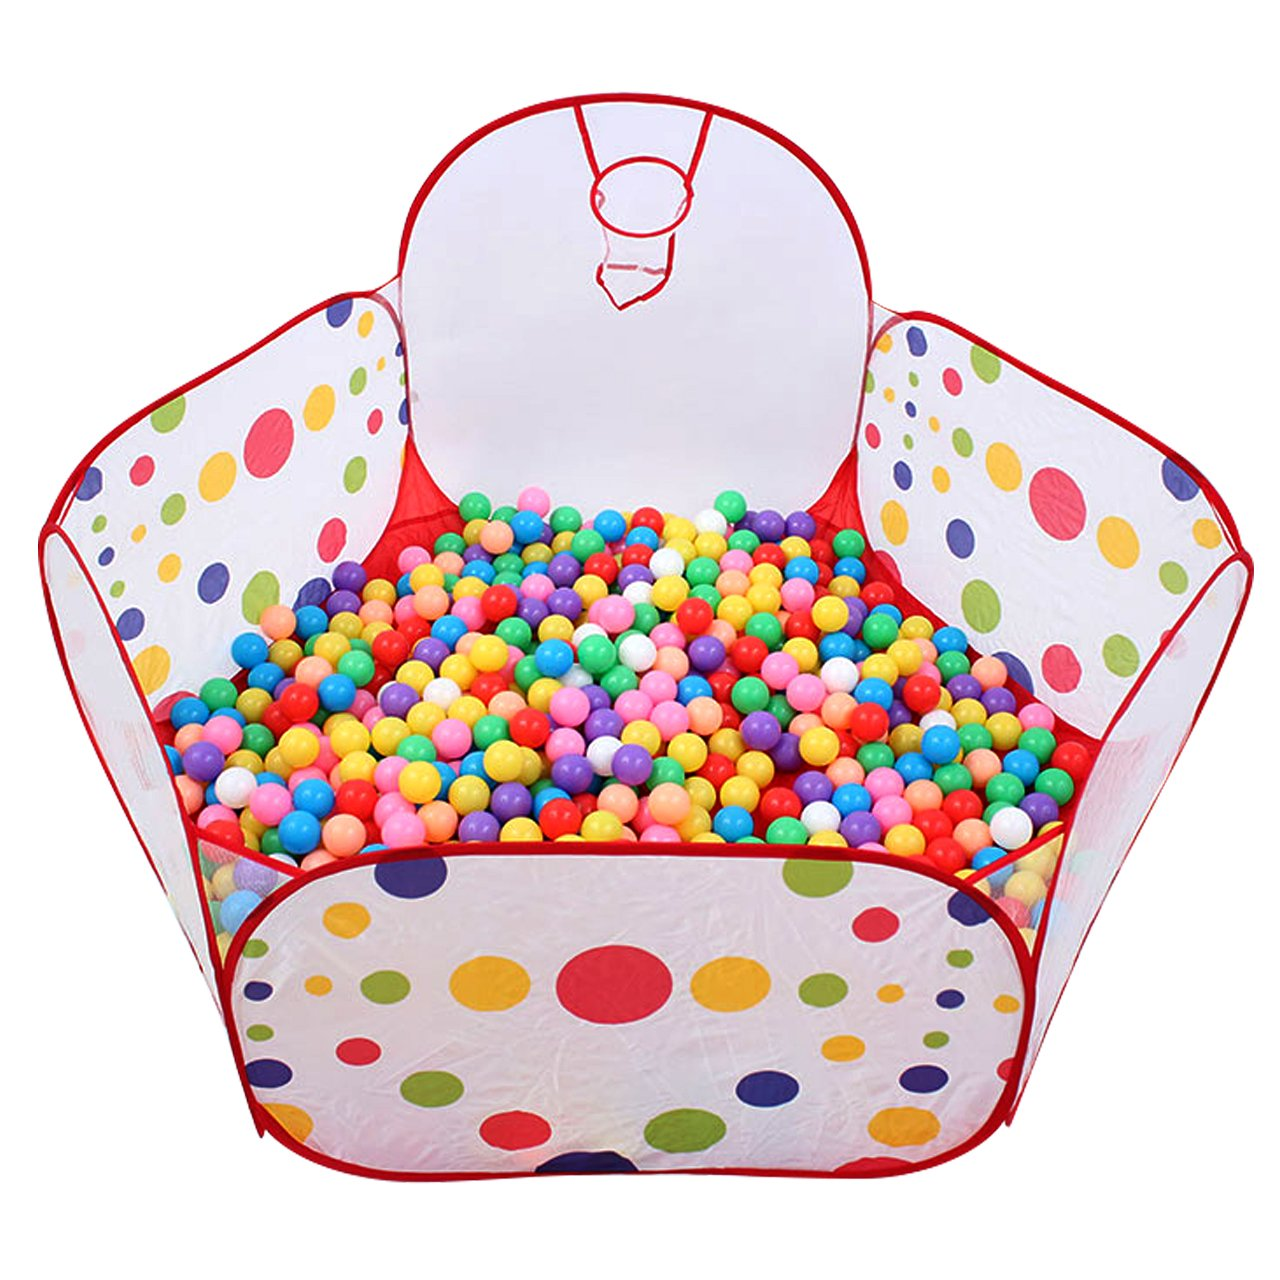 Newcomdigi Toddlers Ball Play Pool, 47 inch Kids Play Tent Playpen Ball Pit Foldable ball Pit